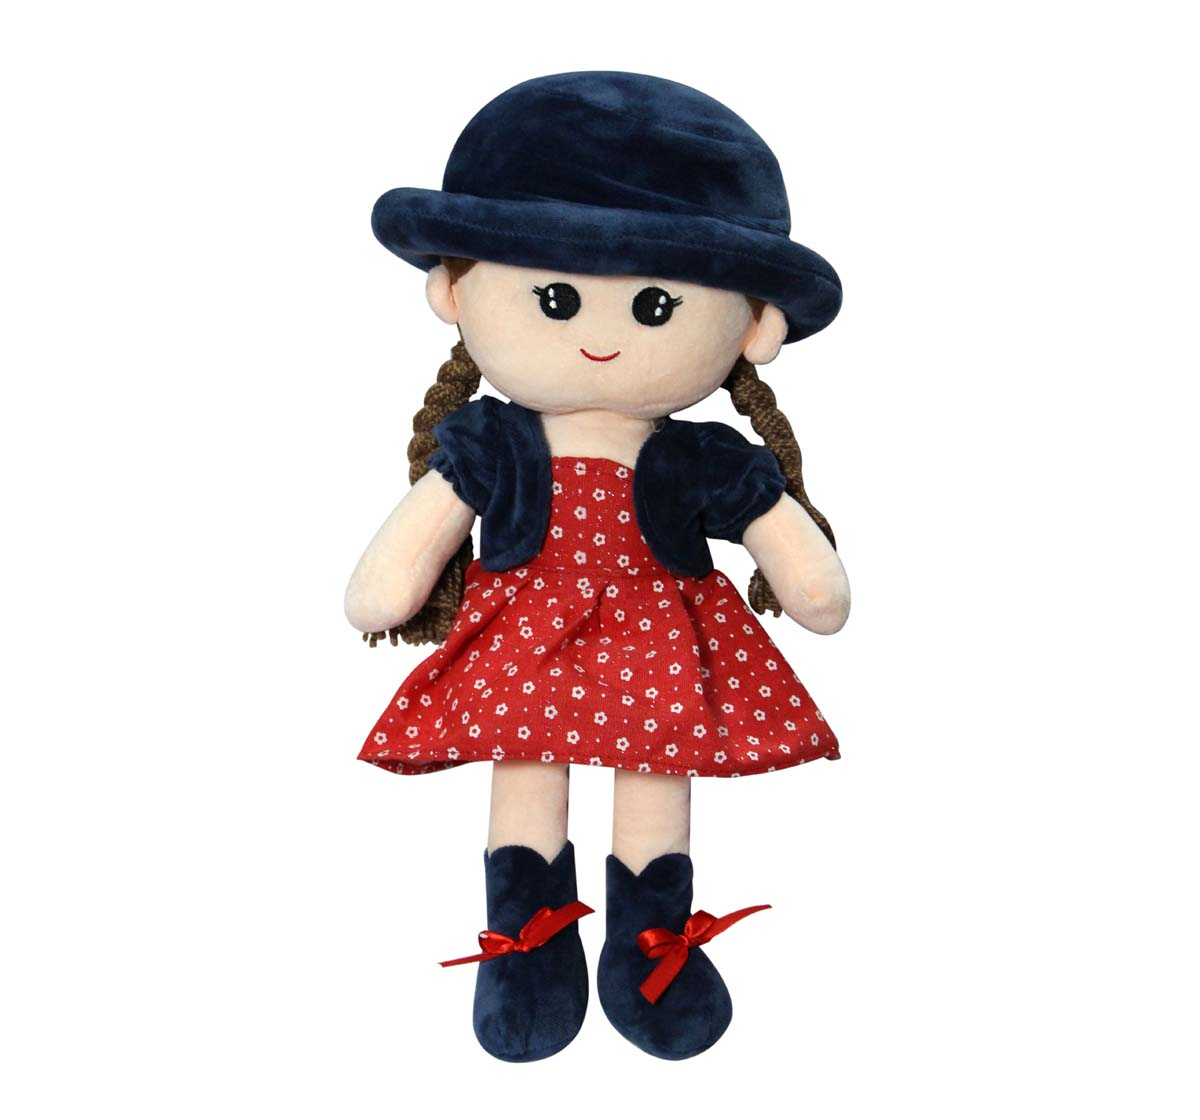 Disney | Disney Flamingo Doll With Round Cap Dolls & Puppets for Kids age 12M+ 48.26 Cm